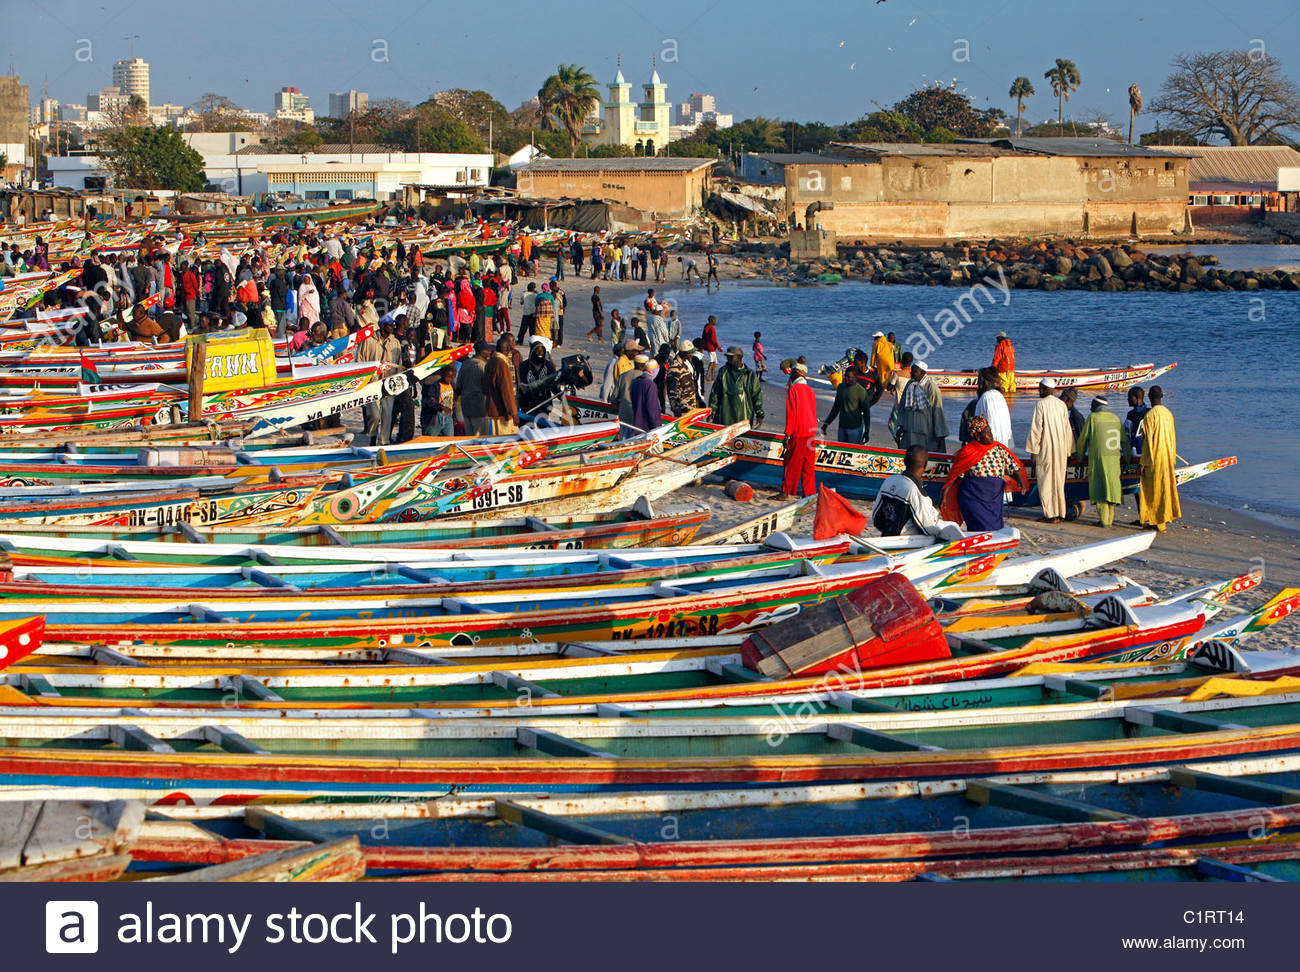 colorfully-painted-fishing-boats-line-the-beach-at-the-fish-market-C1RT14.jpg